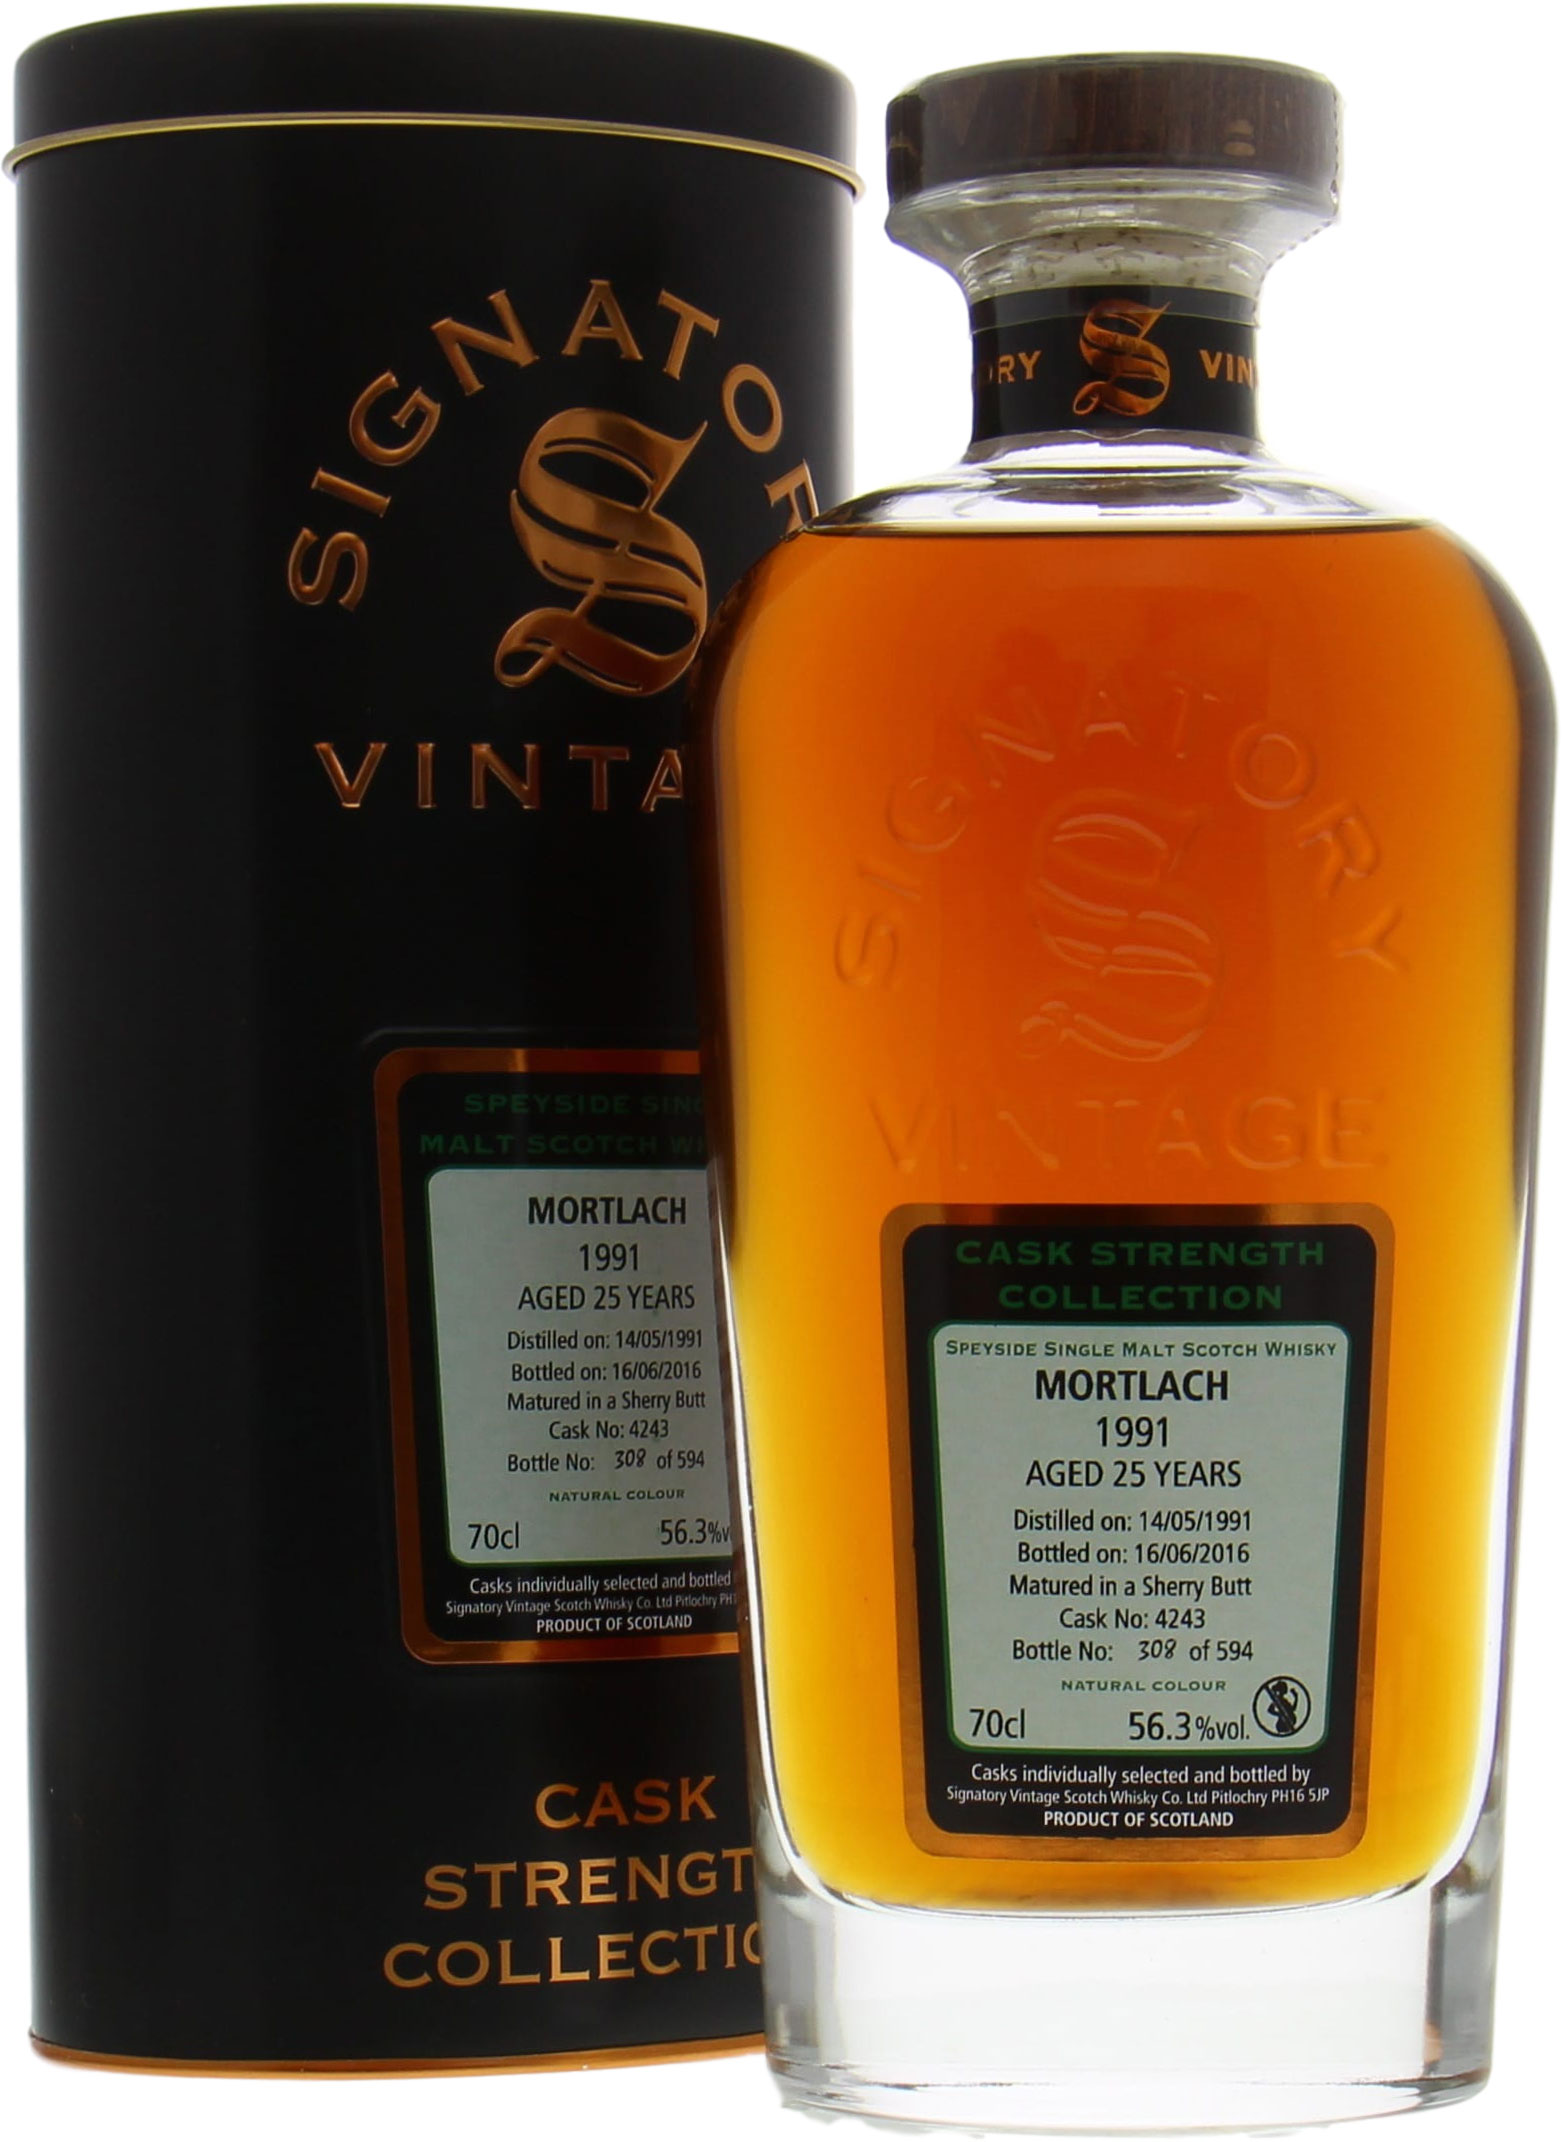 Mortlach - 25 Years Old Signatory Vintage Cask 4243 56.3% 1991